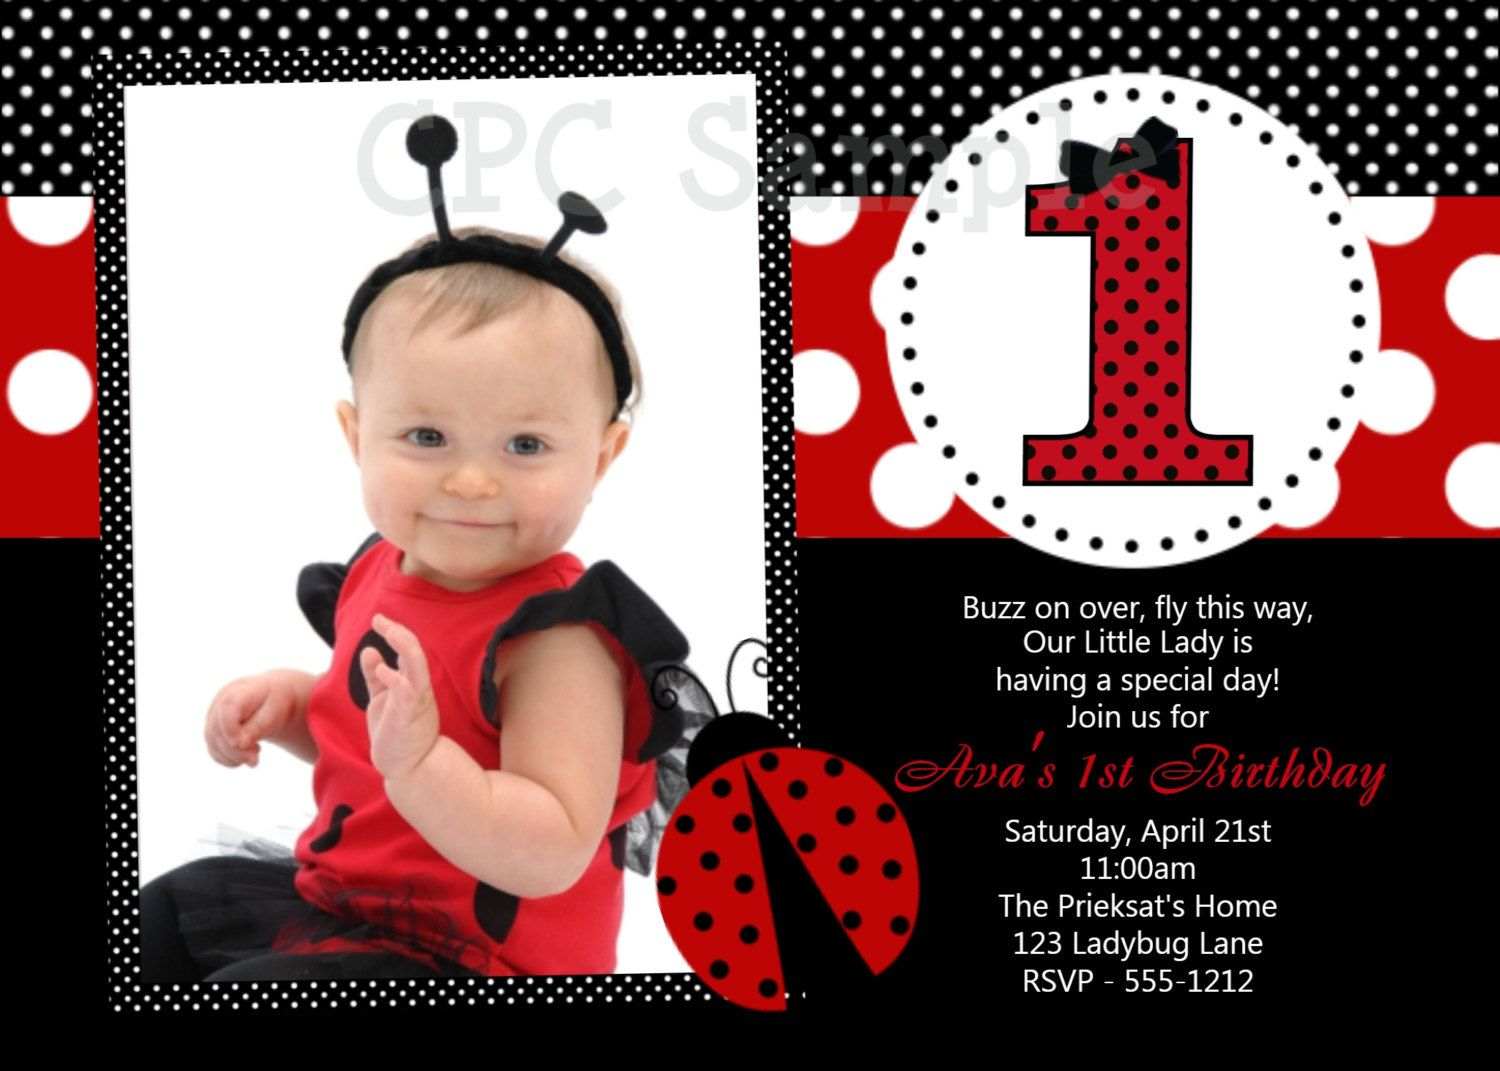 Ladybug Birthday Invitation Printable Or Printed Ladybug St - Digital birthday invitation template